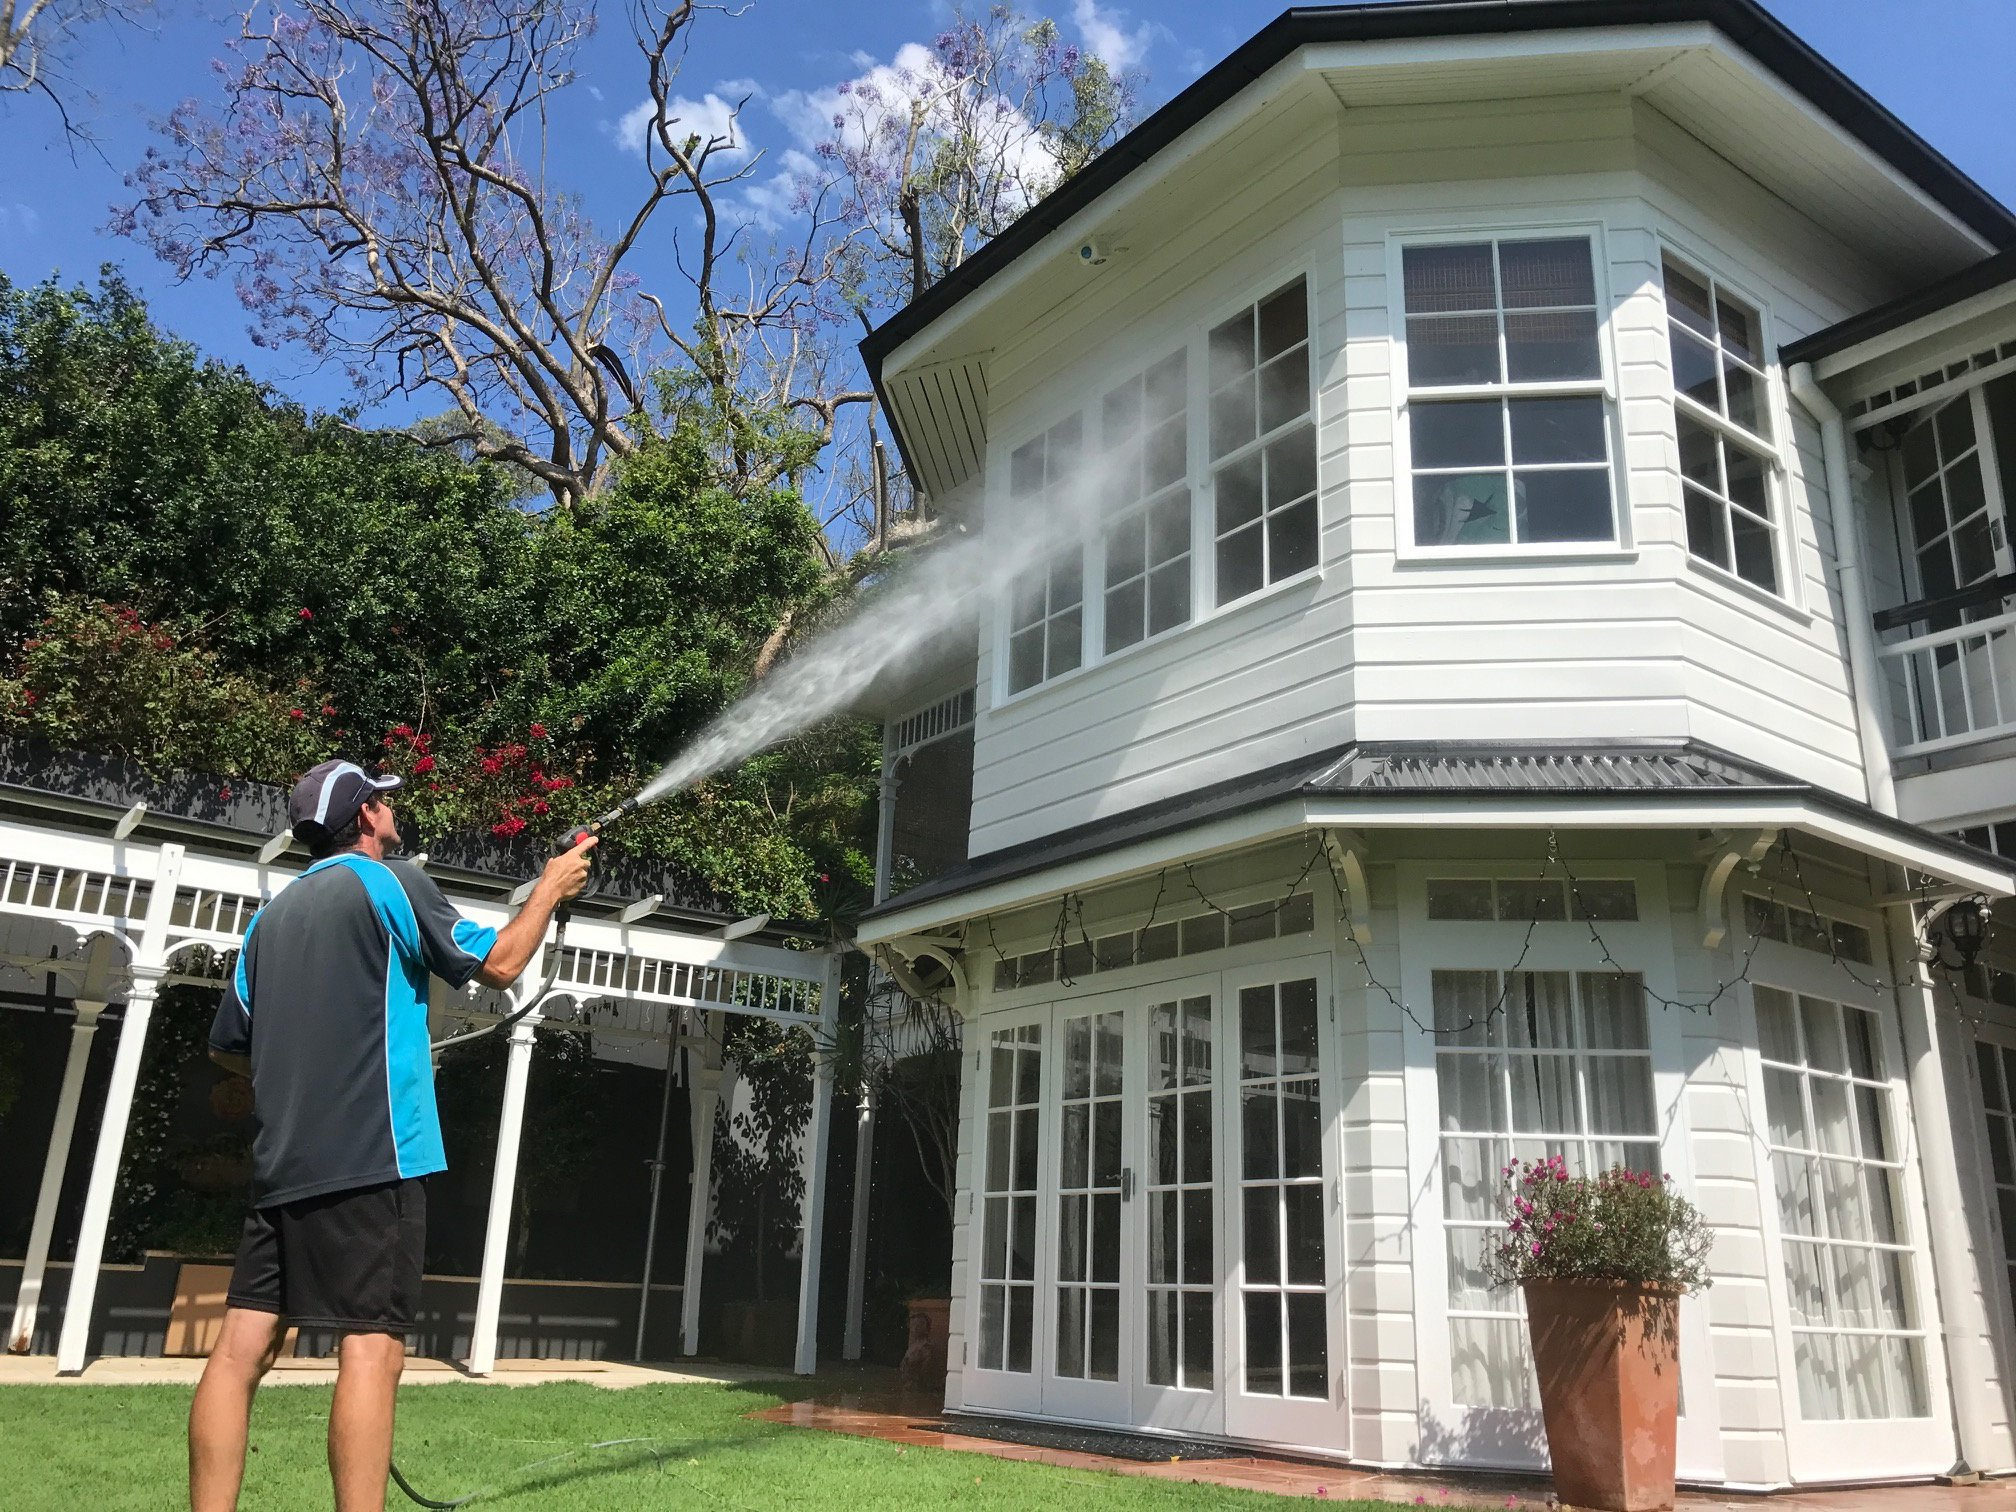 Caloundra Roof washing services